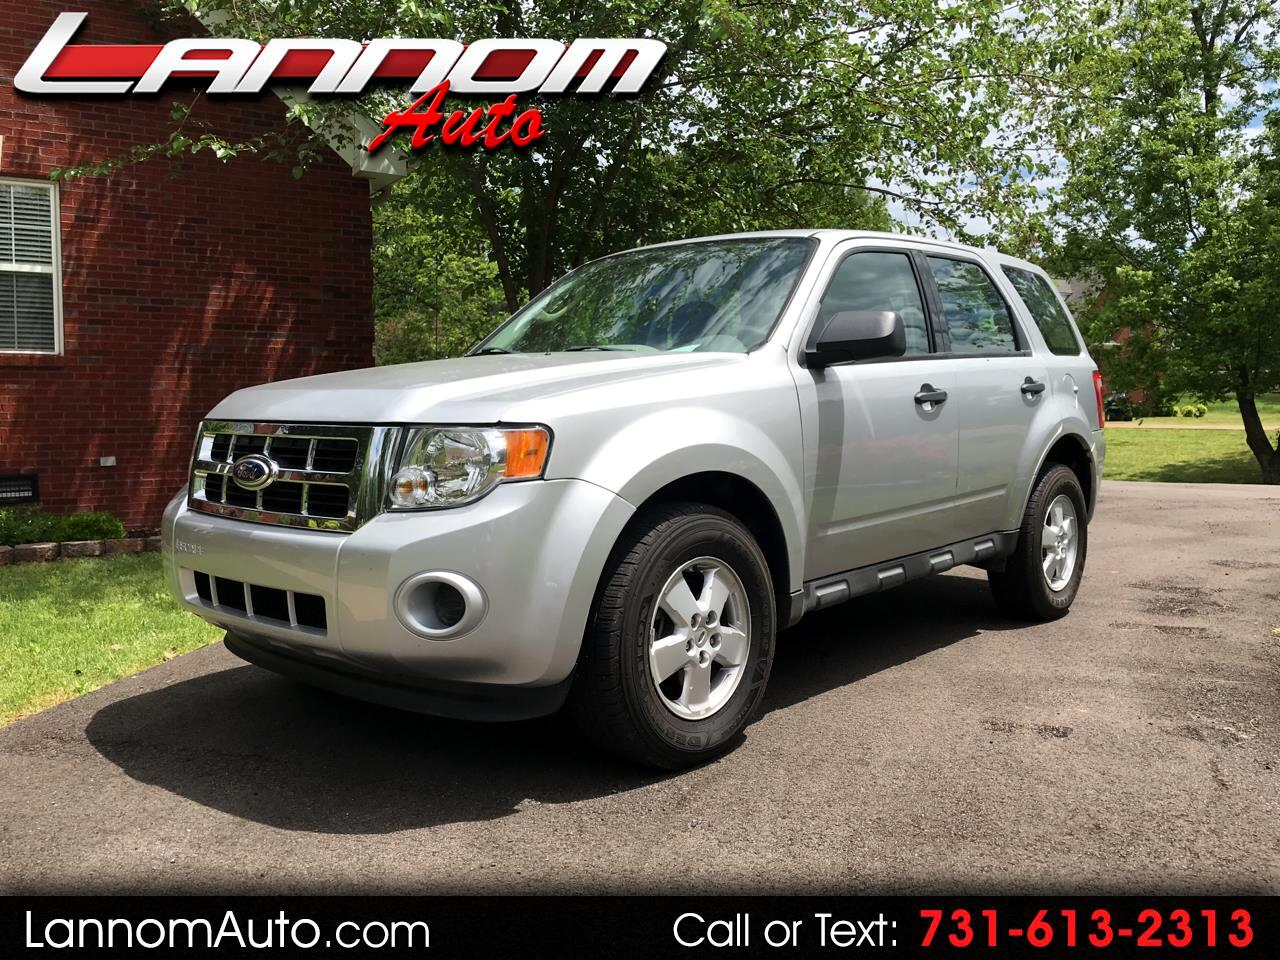 2012 Ford Escape FWD 4dr XLS